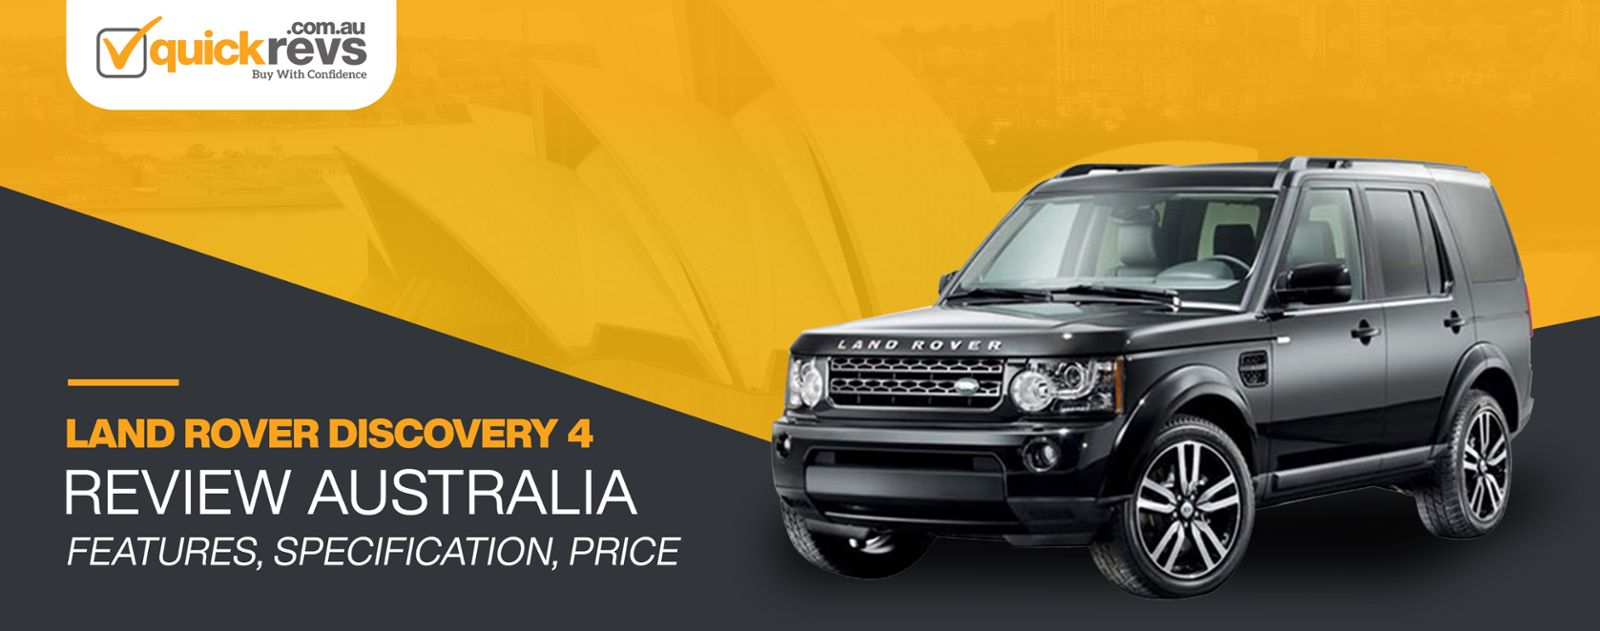 Land Rover Discovery 4 Review Australia